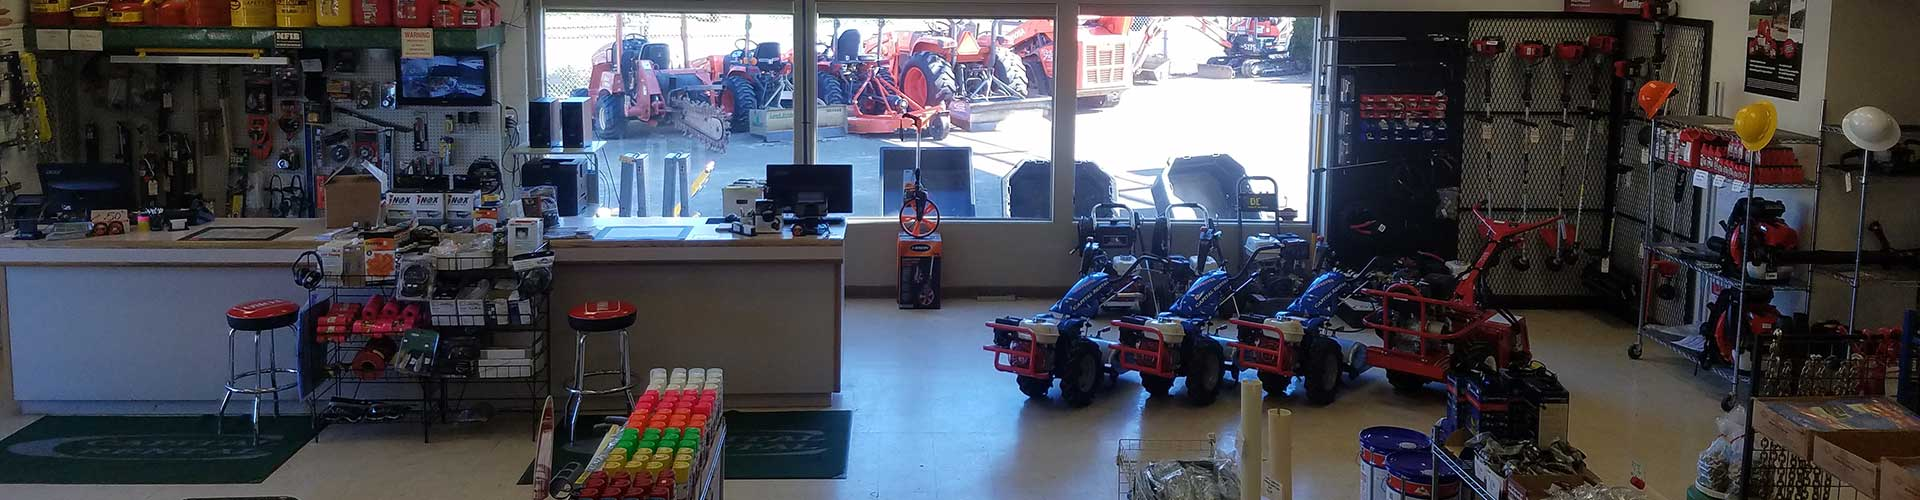 Equipment & tool rentals in the Central Willamette Valley